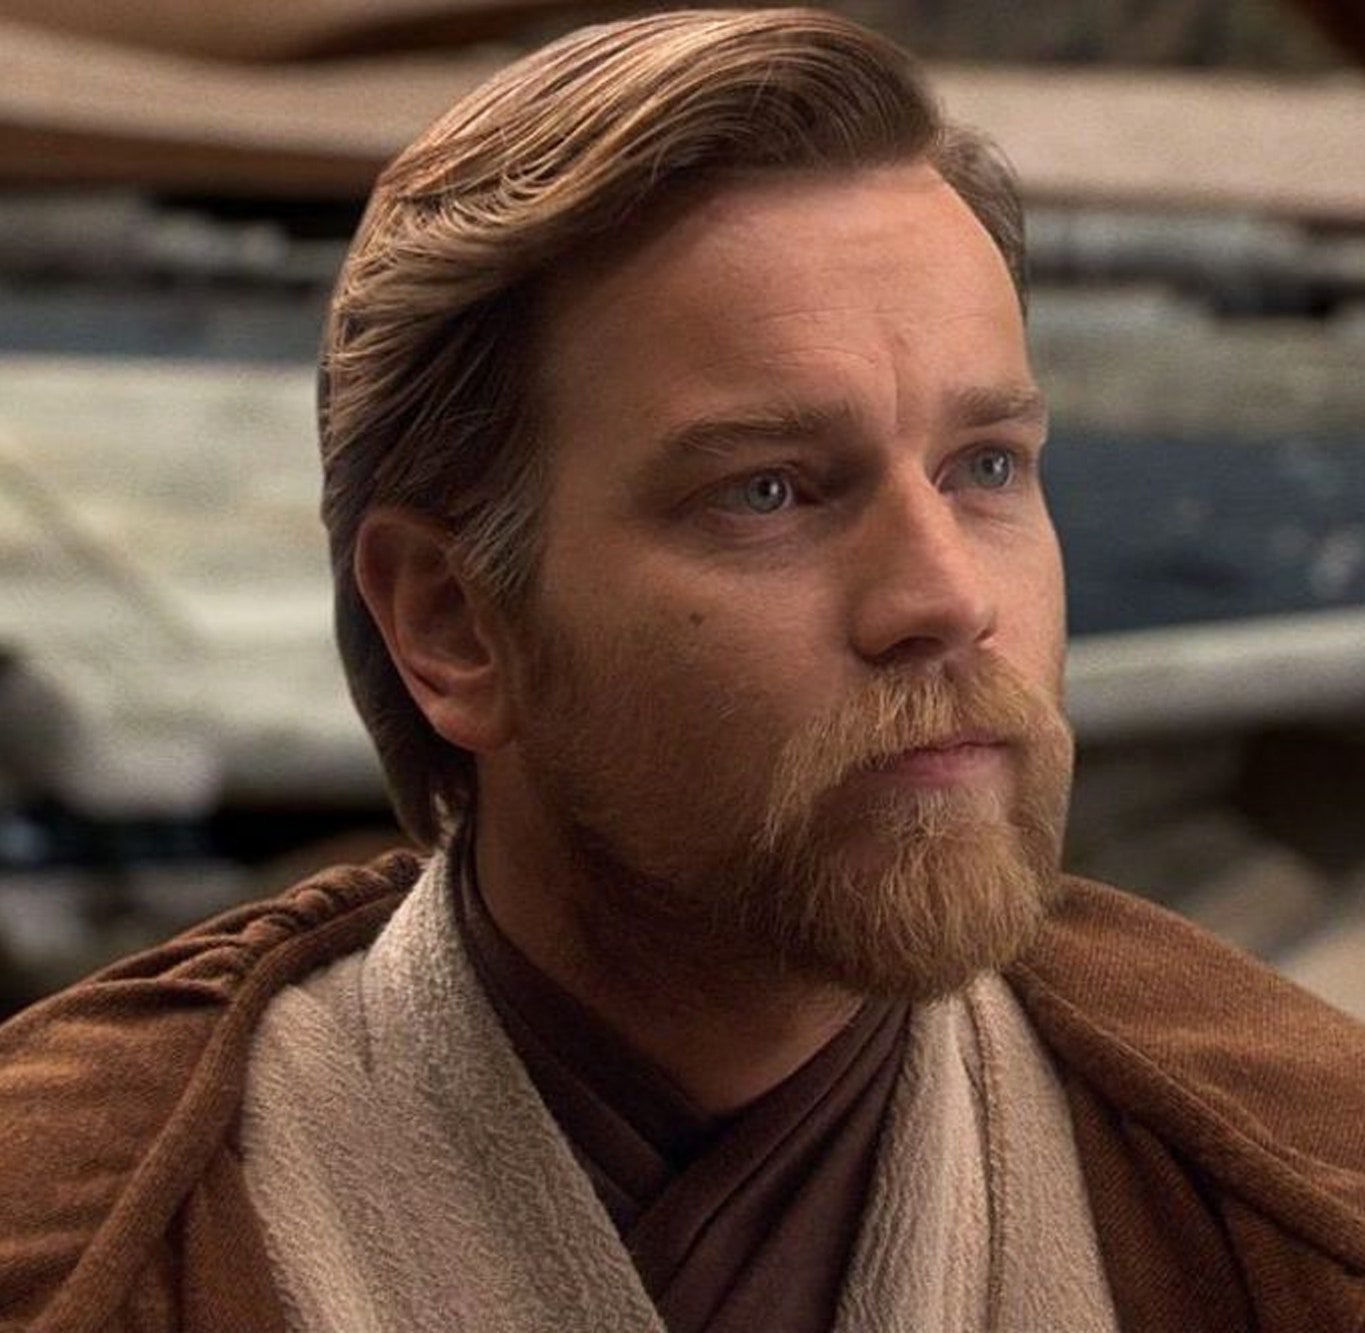 1 58 e1610108071106 20 Things You Probably Didn't Know About Ewan McGregor